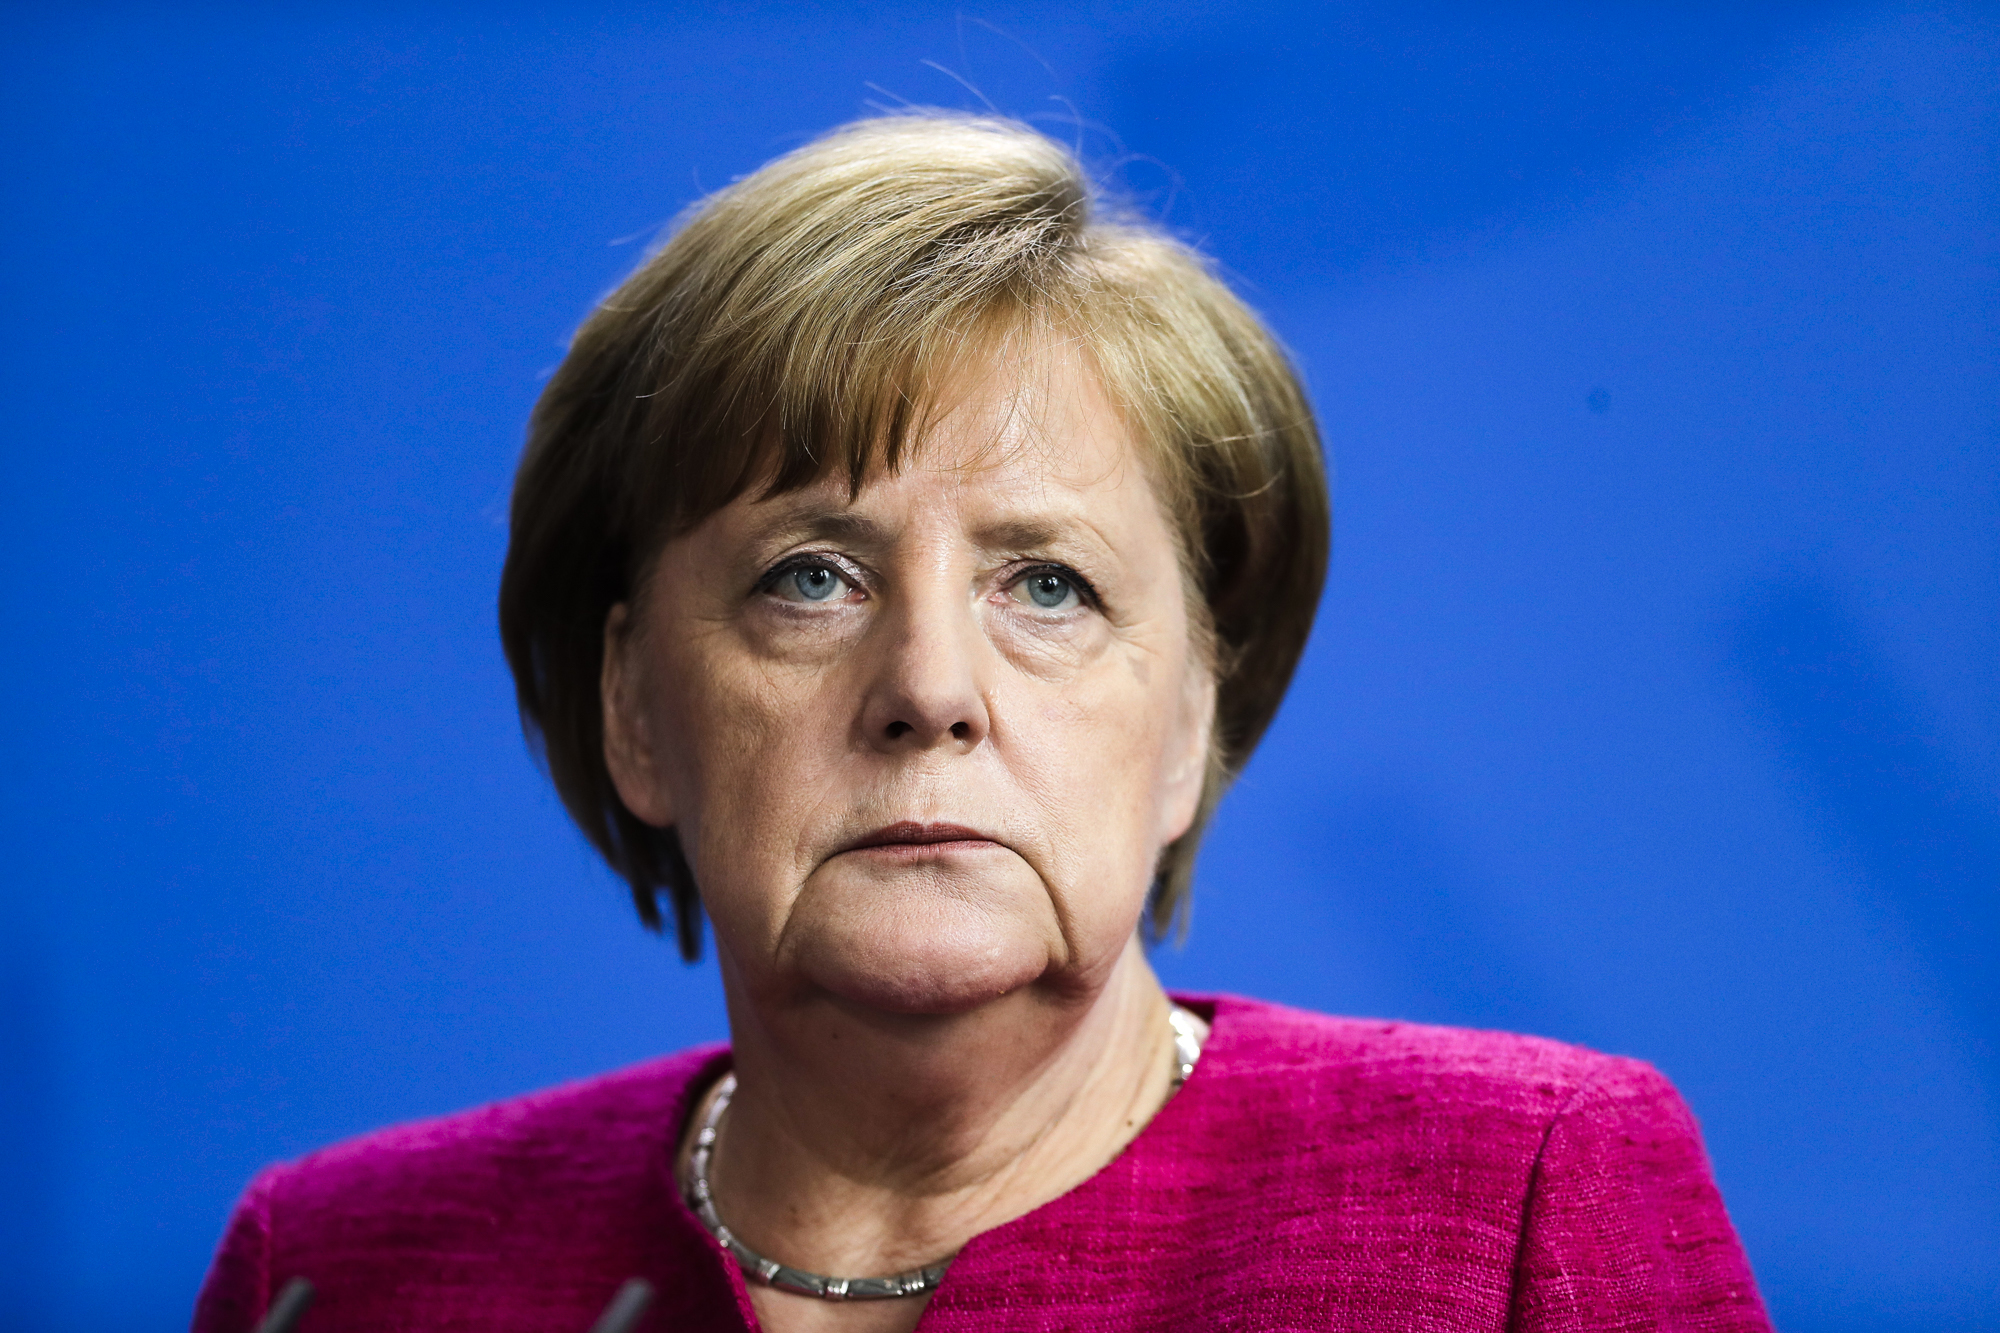 Angela Merkel seeks migrant talks with EU states, faces coalition crisis